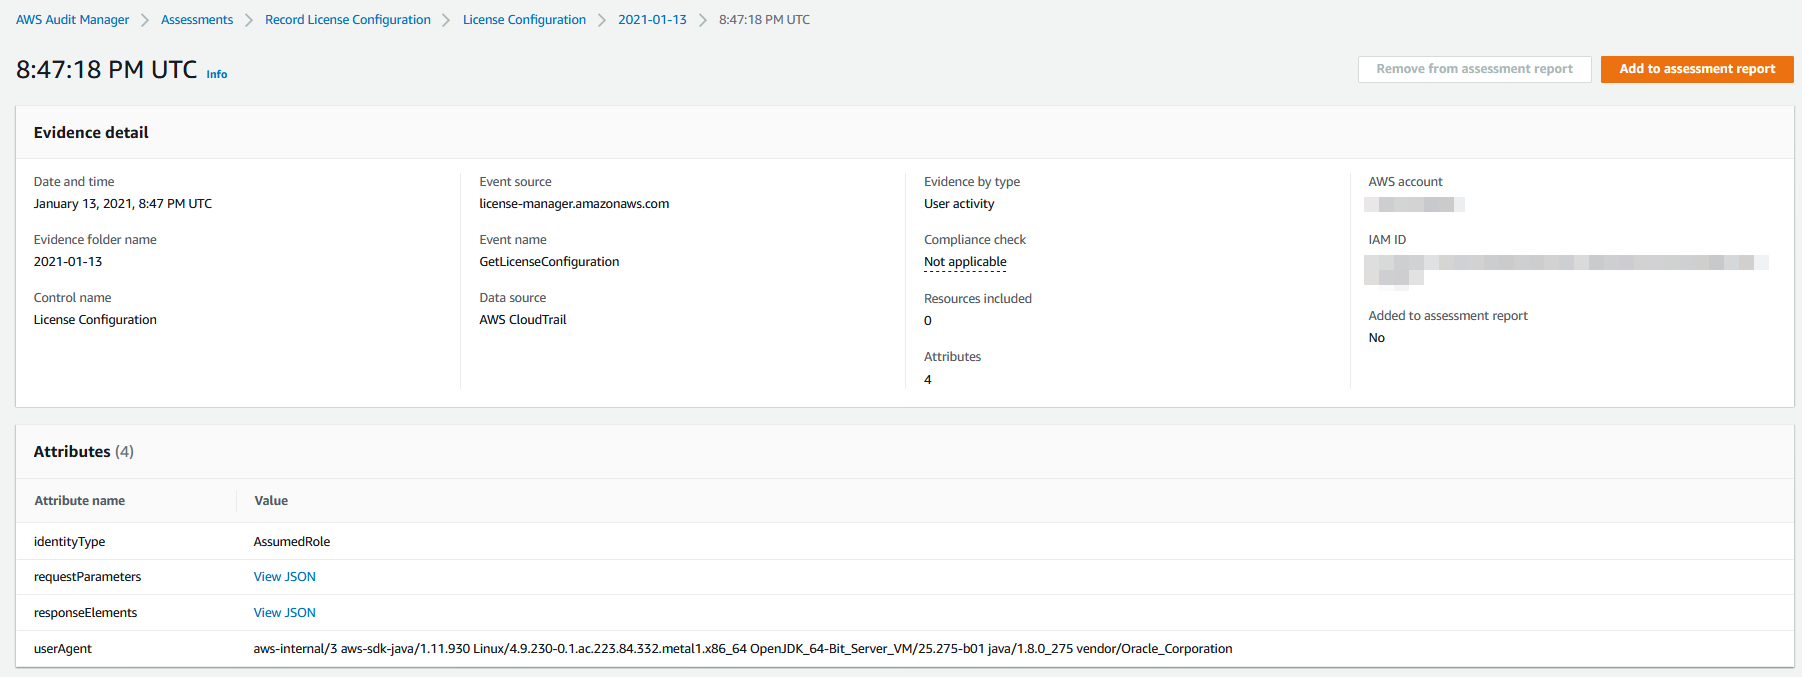 The Evidence detail section includes entries for date and time, evidence folder name, control name (License Configuration), event source, event name (GetLicenseConfiguration), data source (AWS CloudTrail), evidence by type, and more.